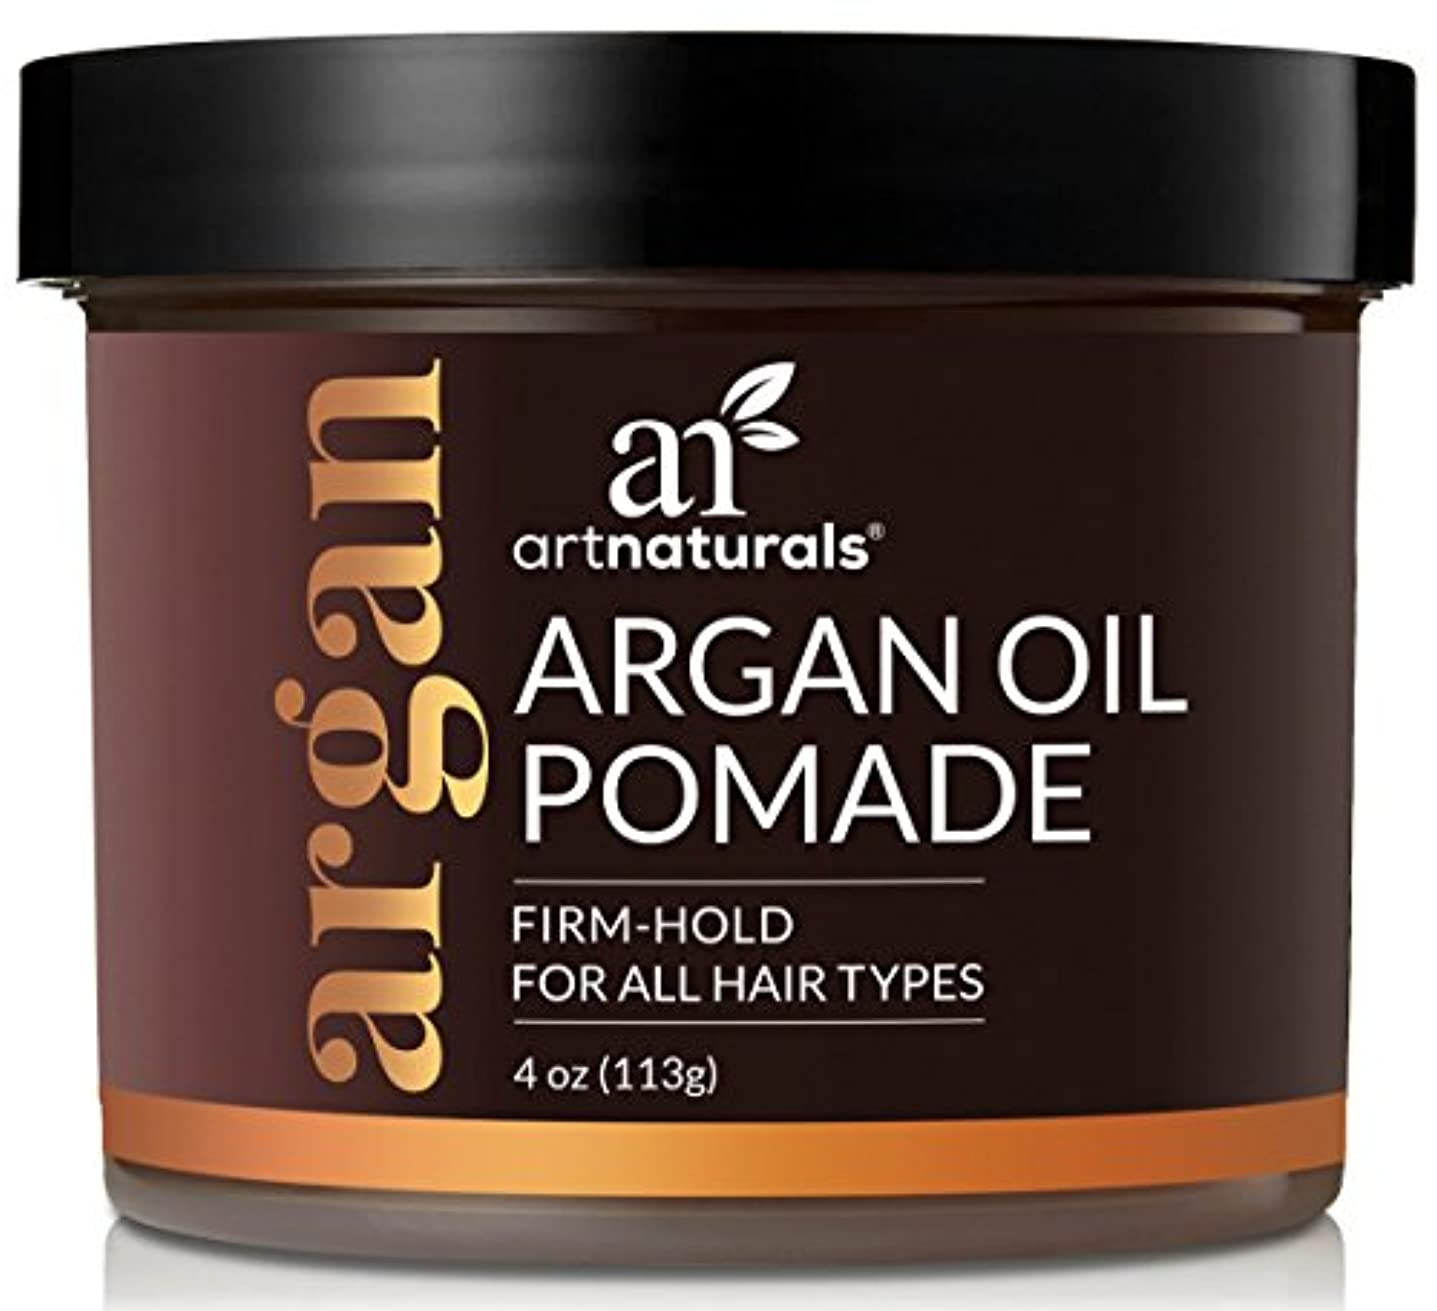 ArtNaturals Professional Argan Oil Pomade - (4 Oz / 113g) - Strong Hold for All Hair Types – Natural Hair Styling...